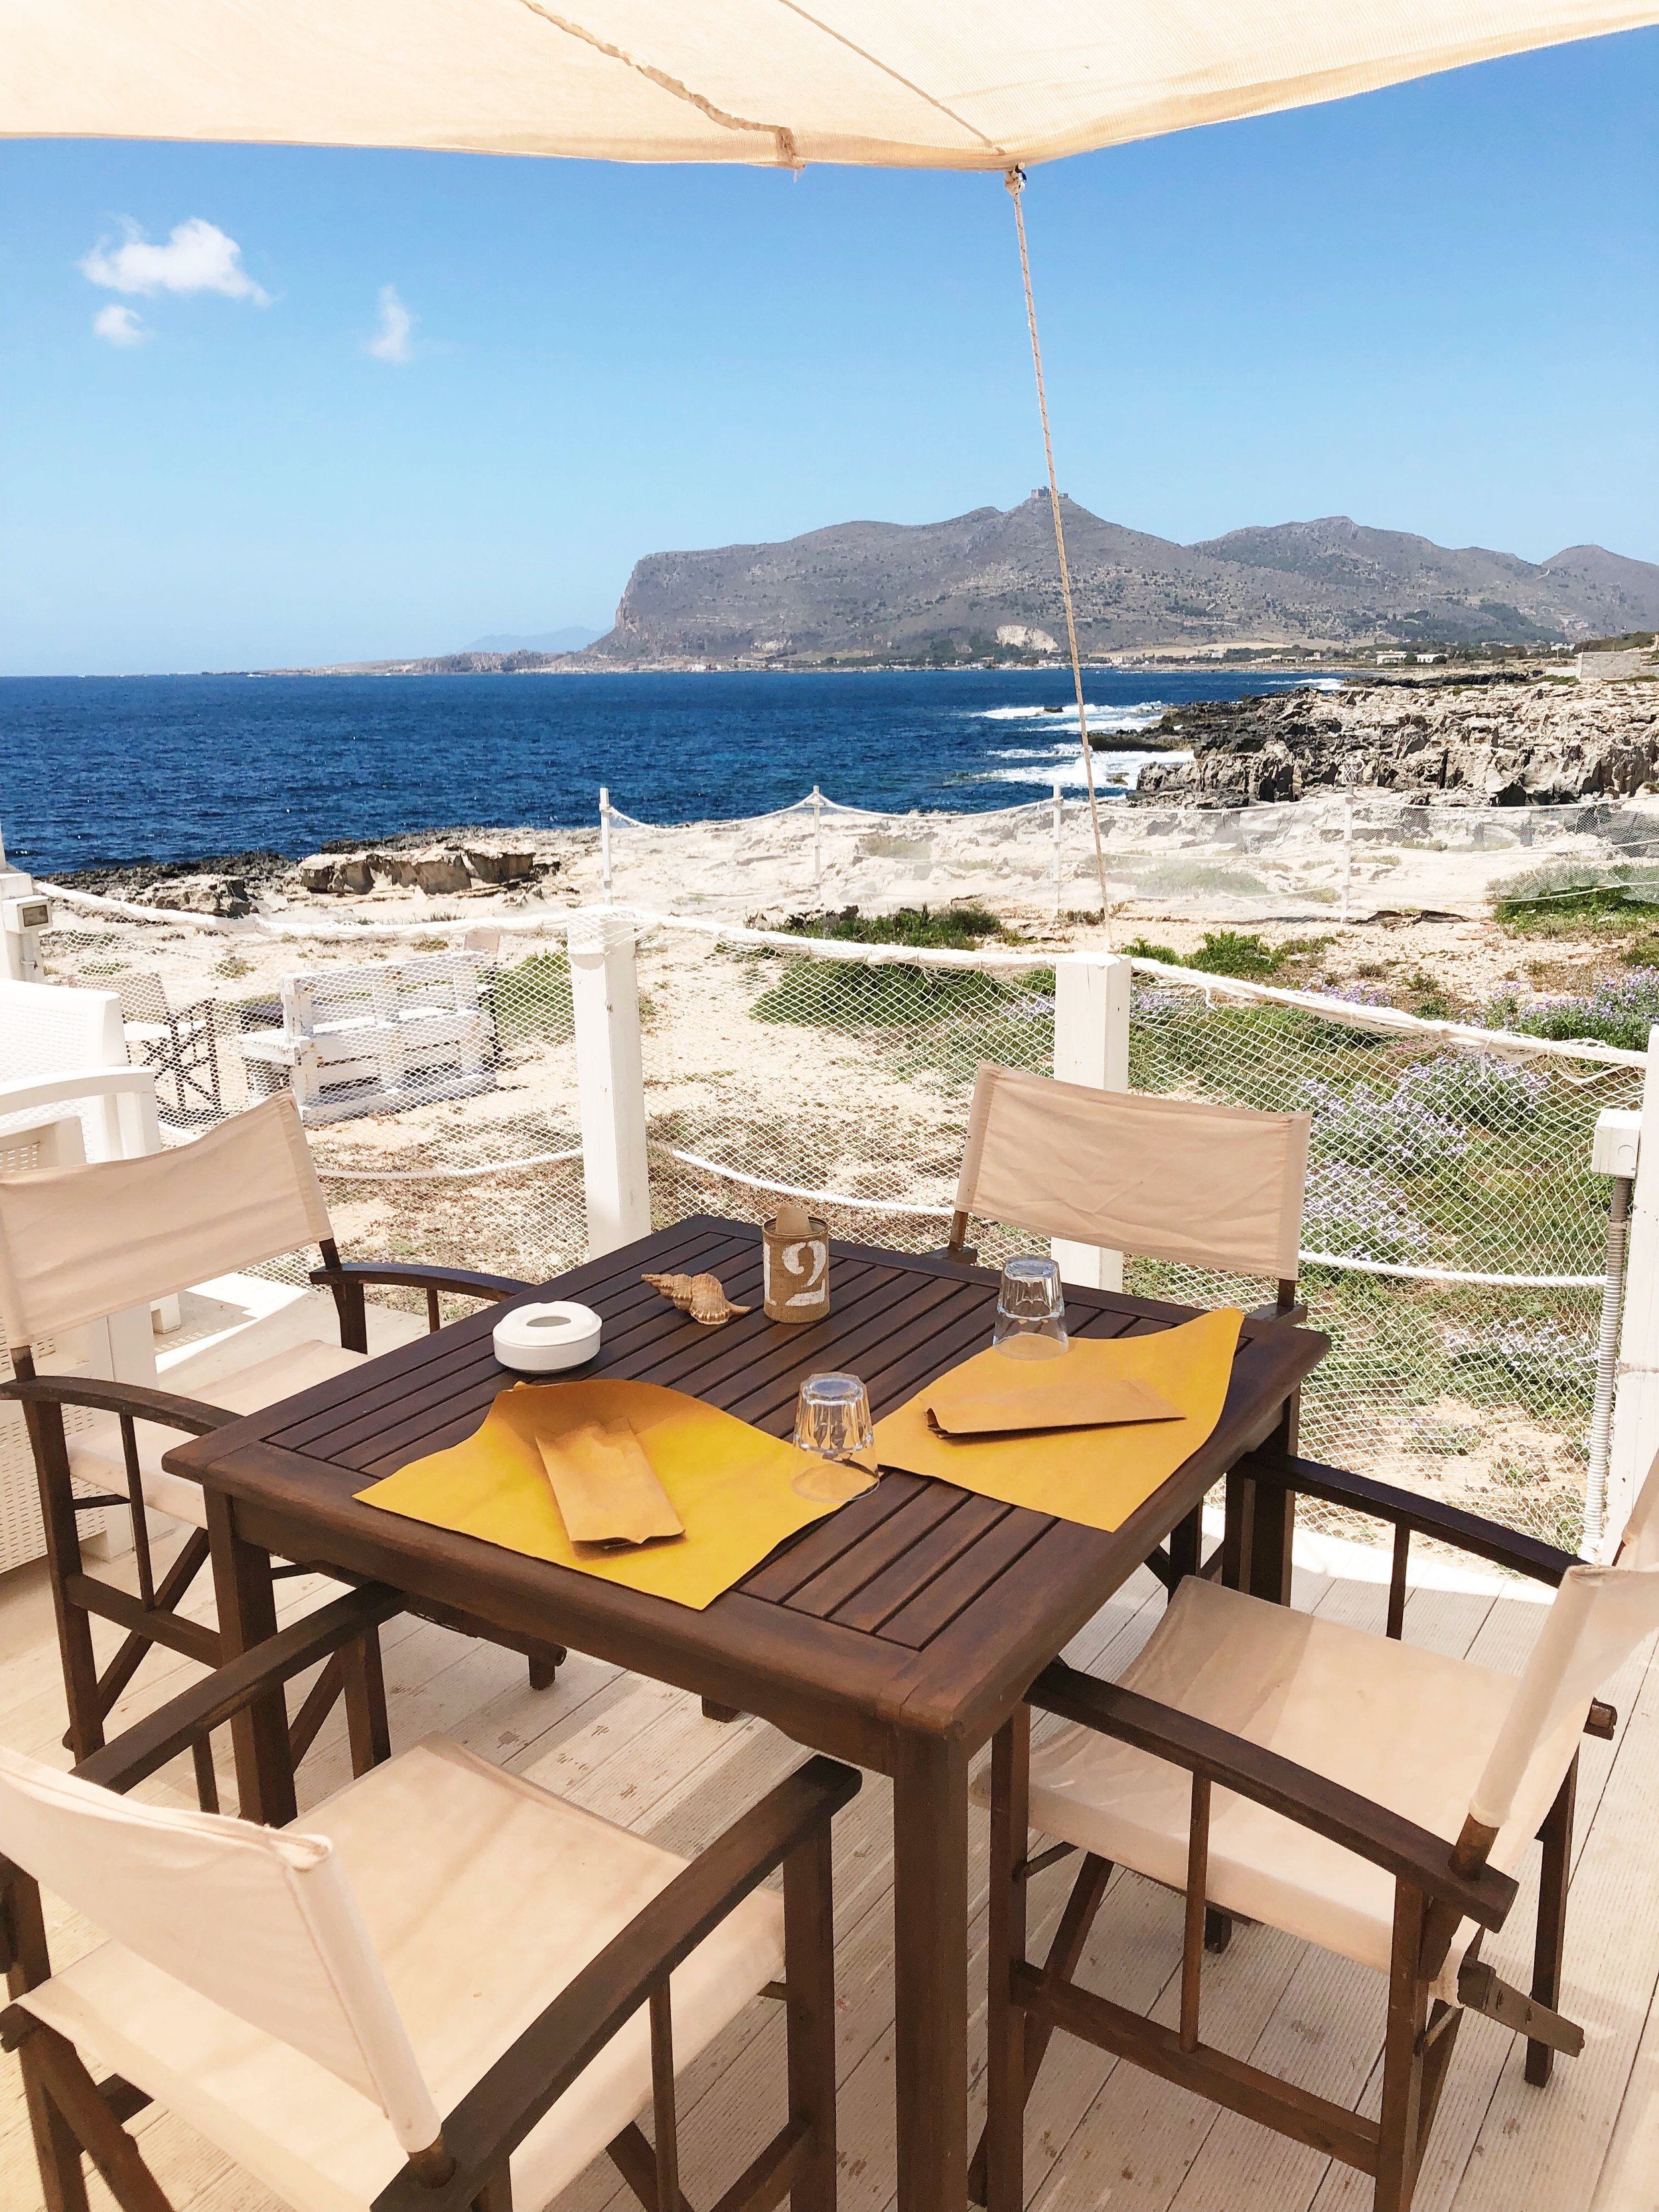 A Guide to Favignana by Lois Avery